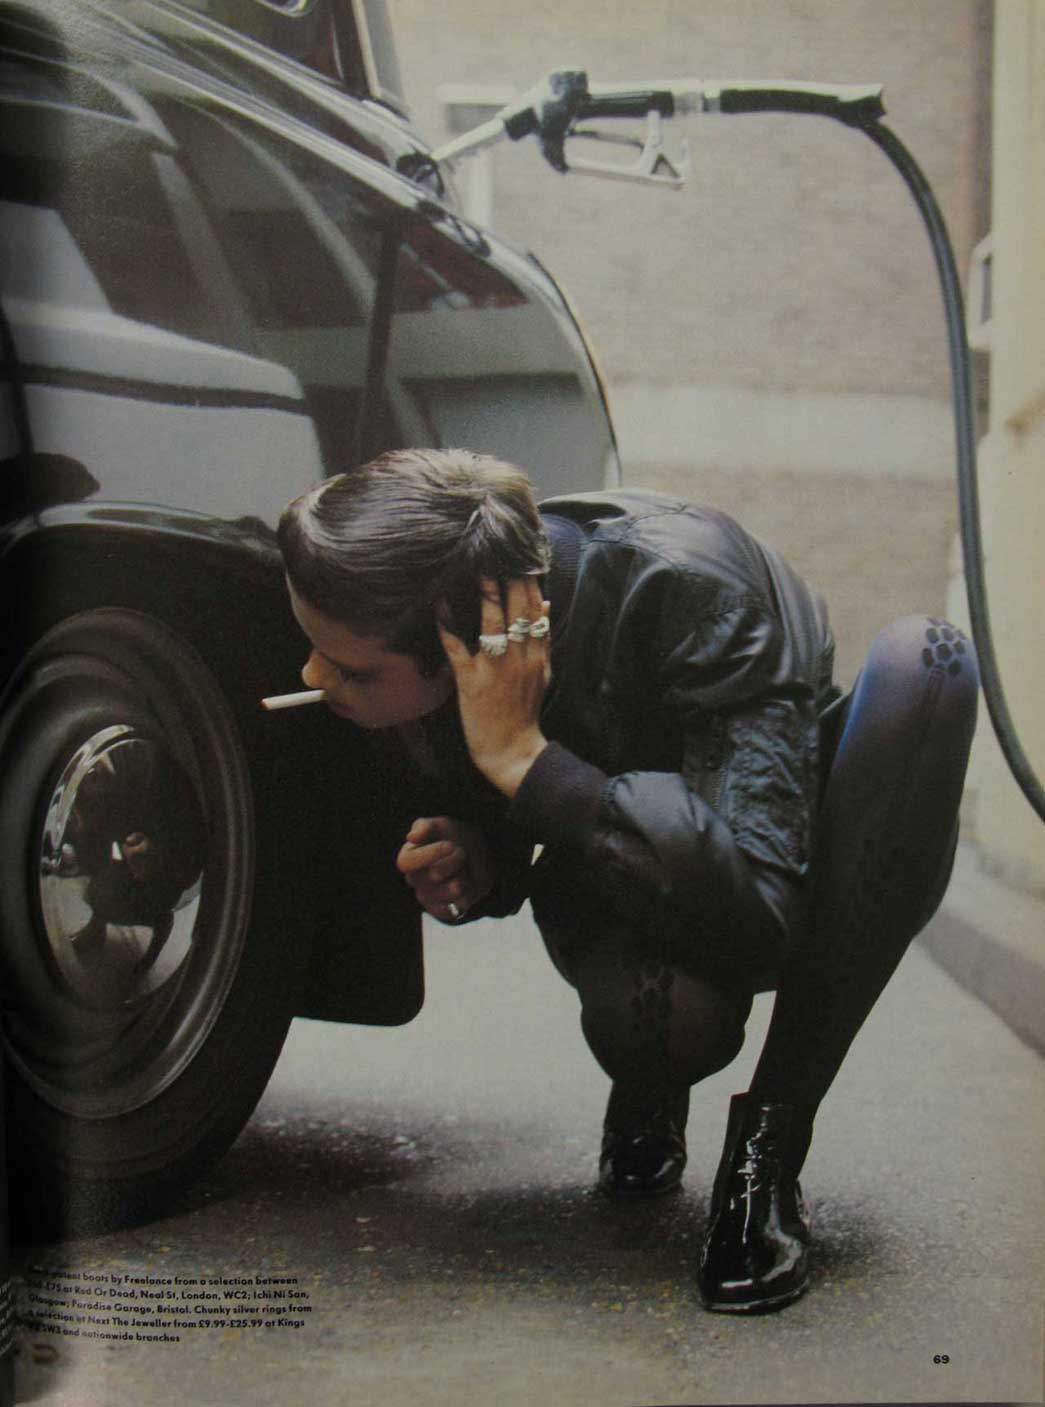 Image from 1988 edition of Vogue magazine showing a model in a bomber jacket.